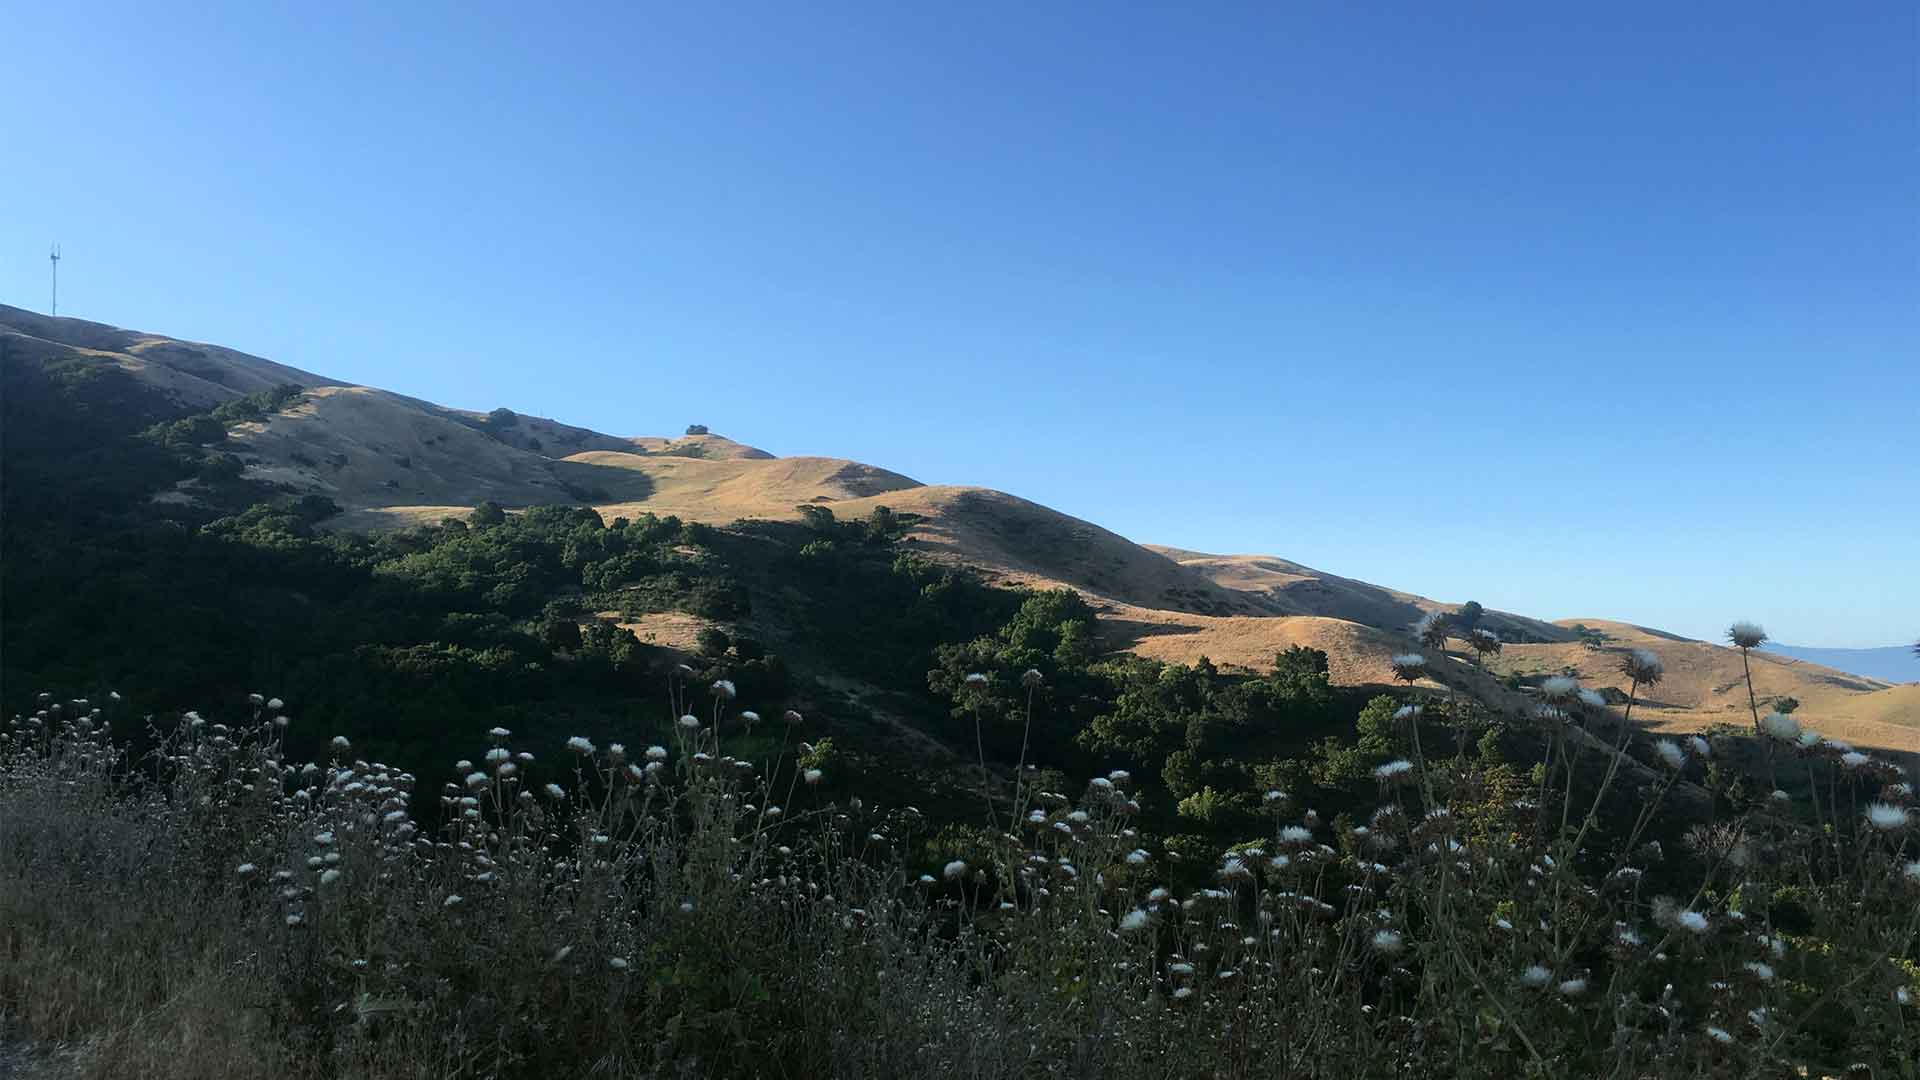 Photos from To Mission Peak 10